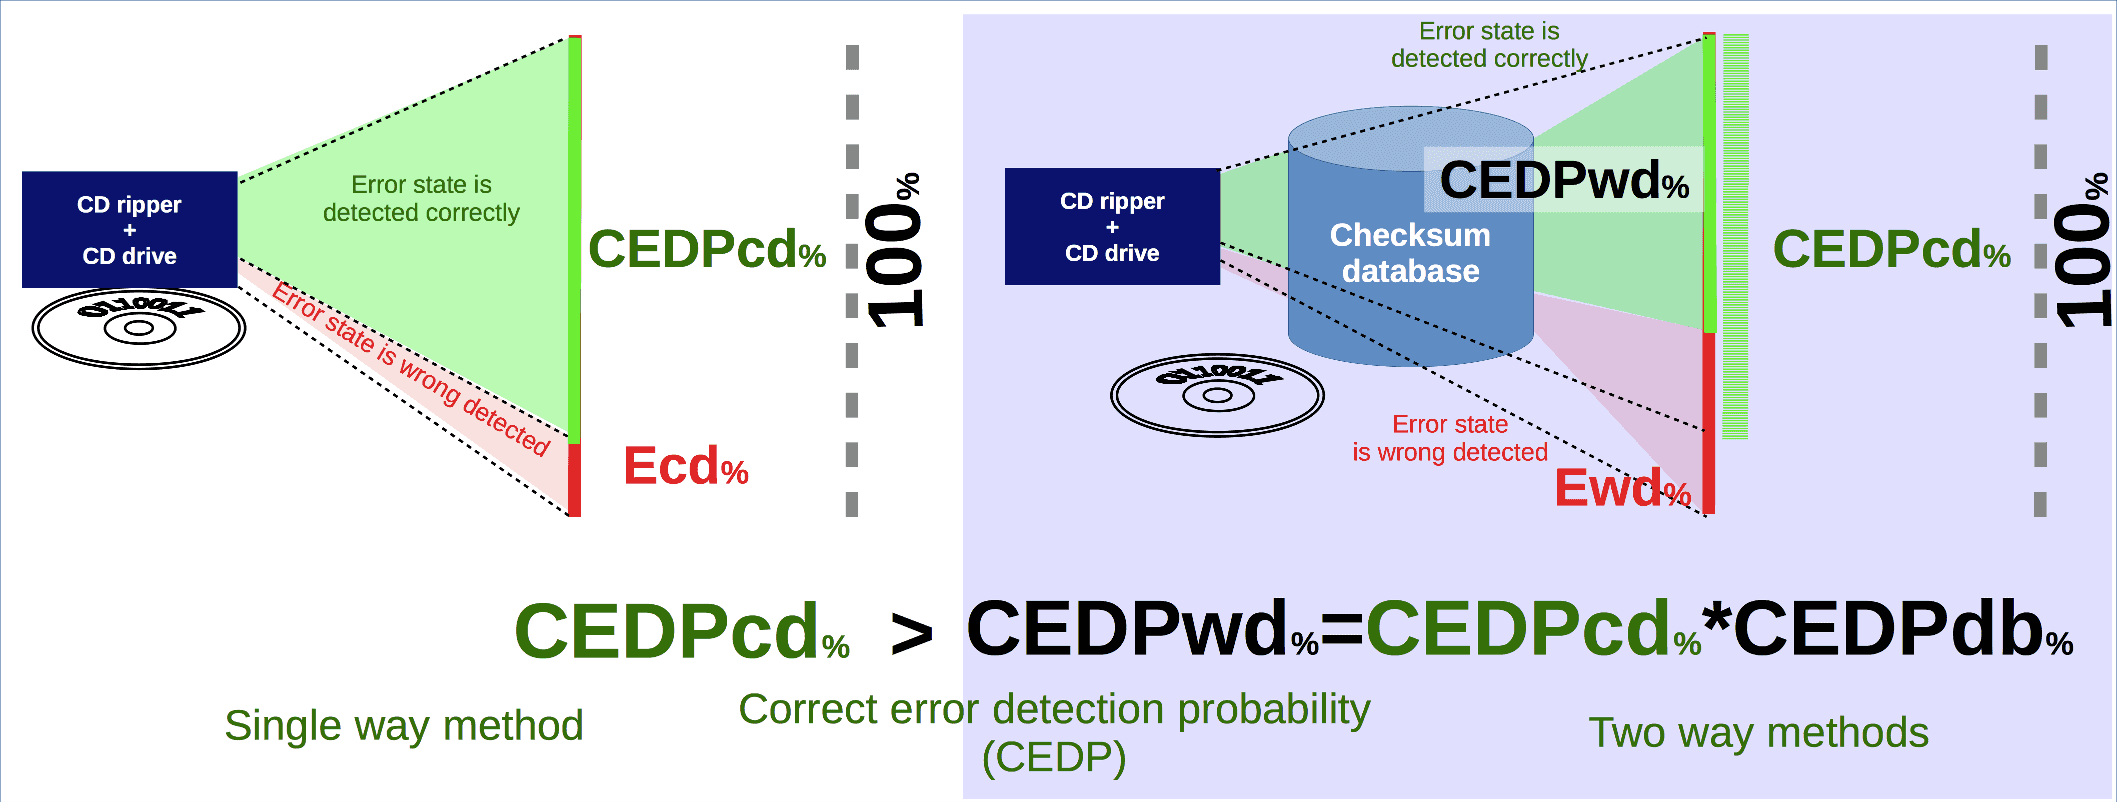 CD rip error detection probability with checksum database and without